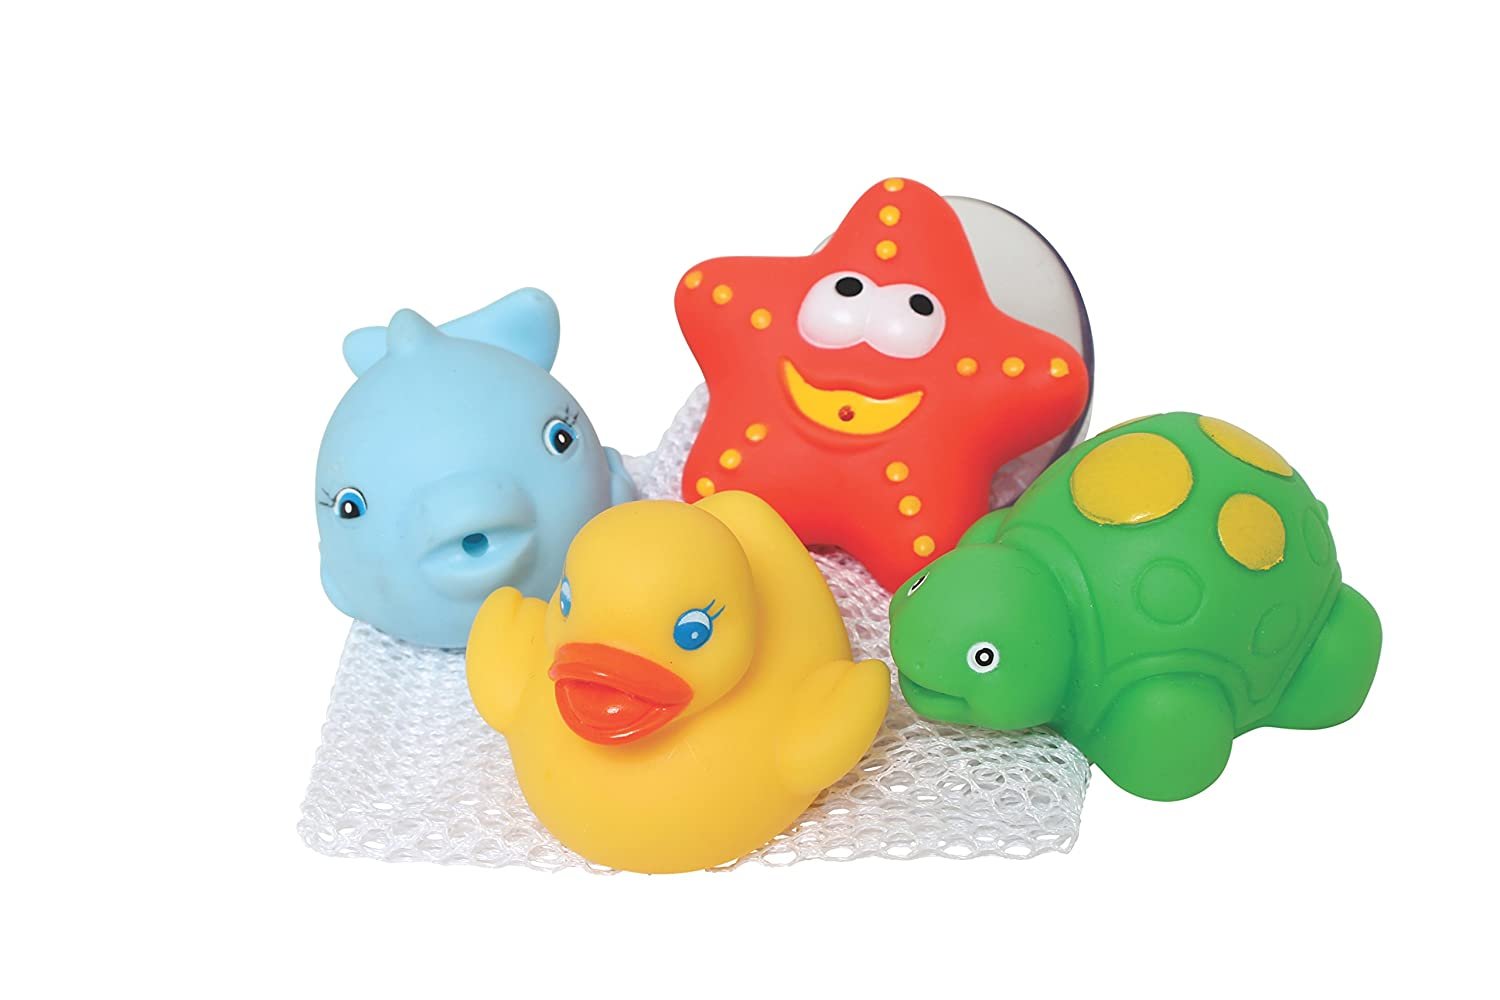 Playgro Bath Squirtees and Storage Set No-1 Best Toy for Baby-Infant-Toddler Children 0185452